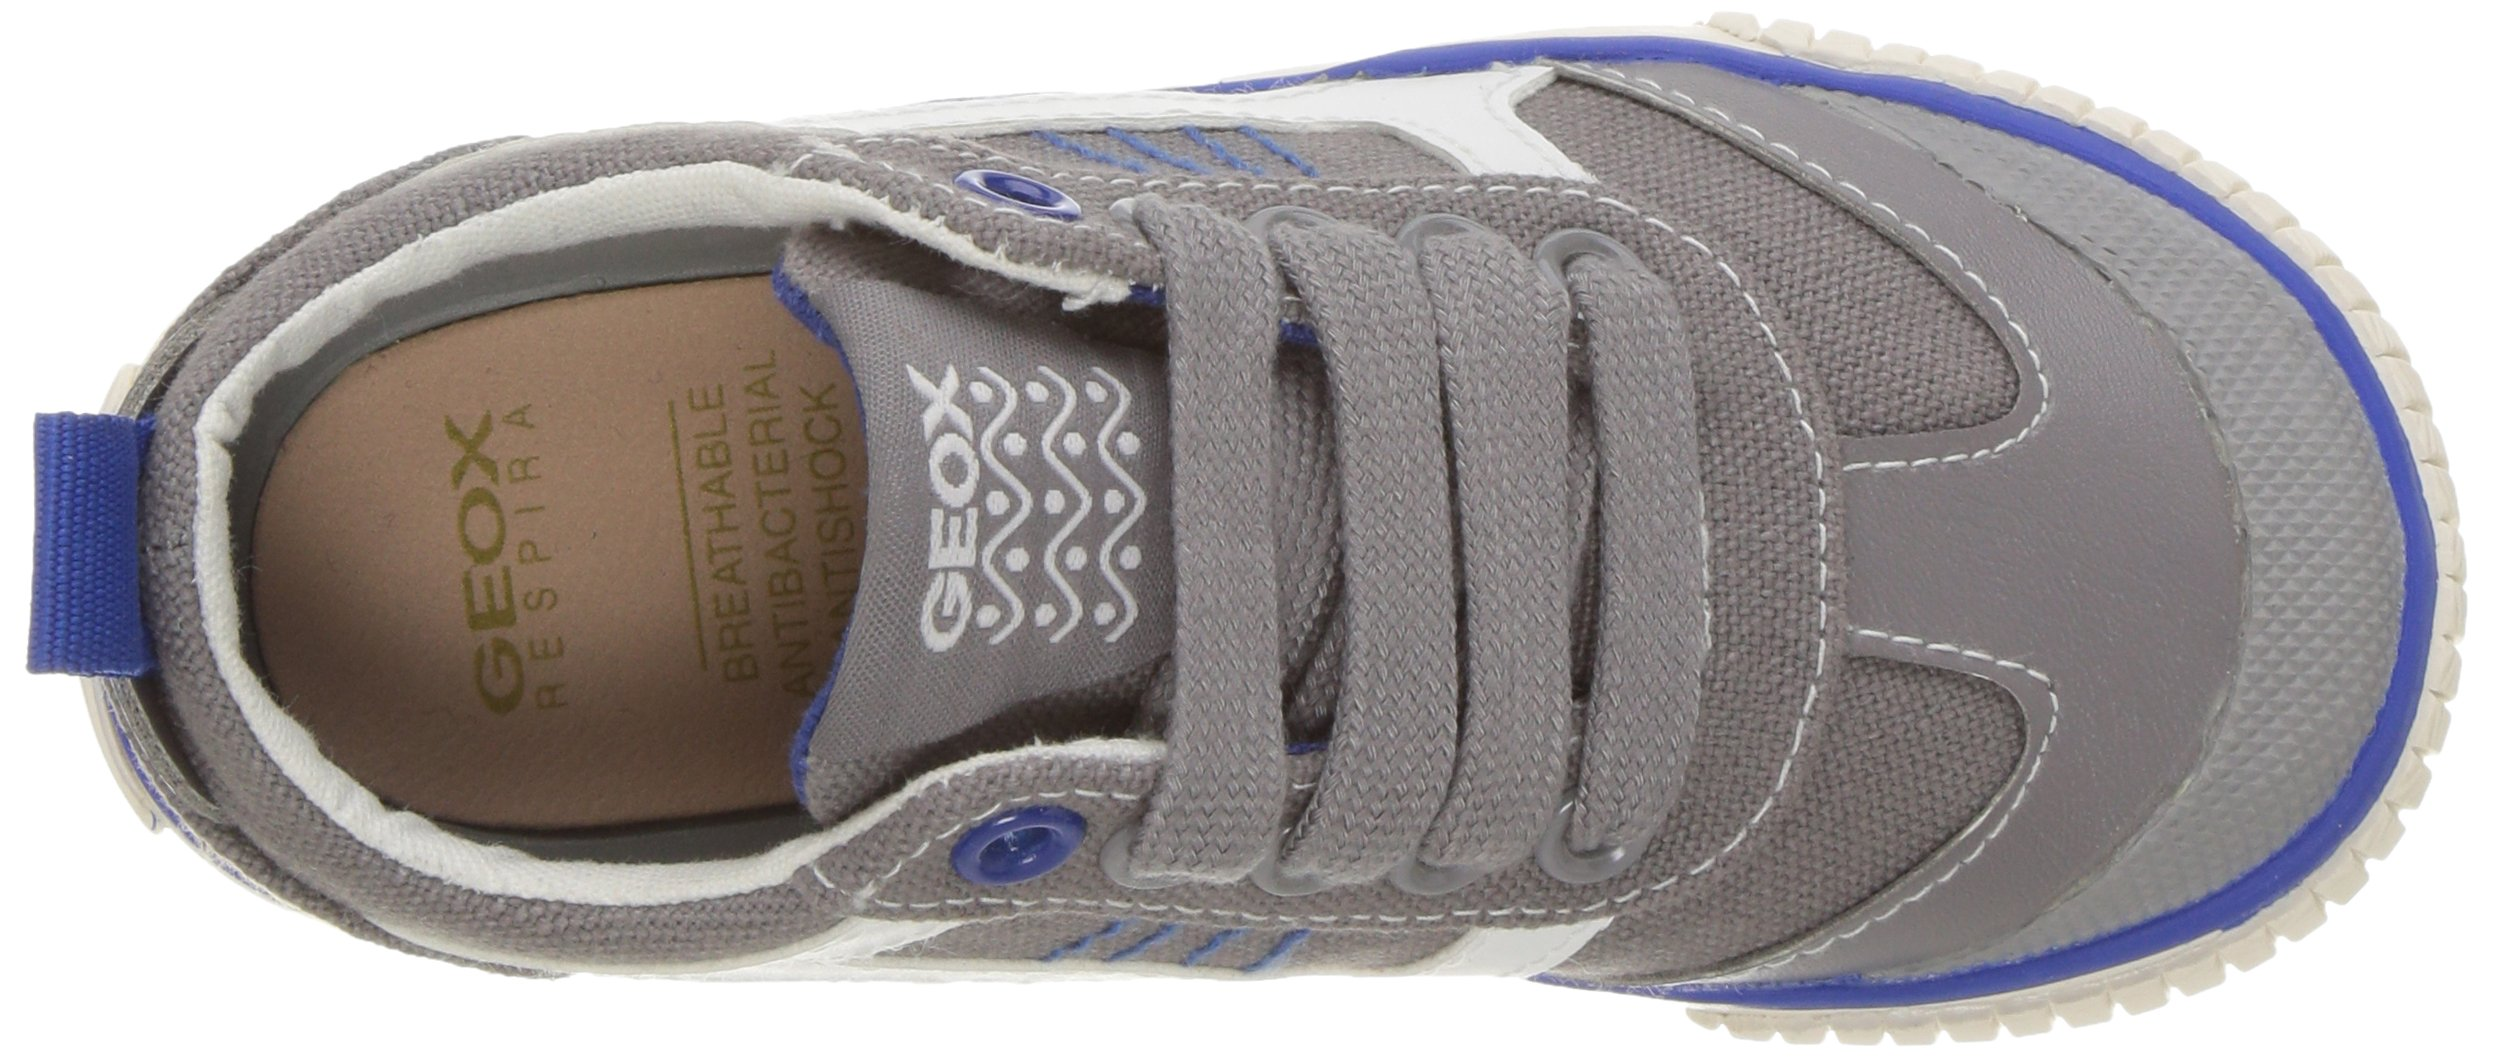 Geox Boys' JR KIWIBOY 89 Slip-On Grey/Royal 36 EU/4 M US Big Kid by Geox (Image #8)